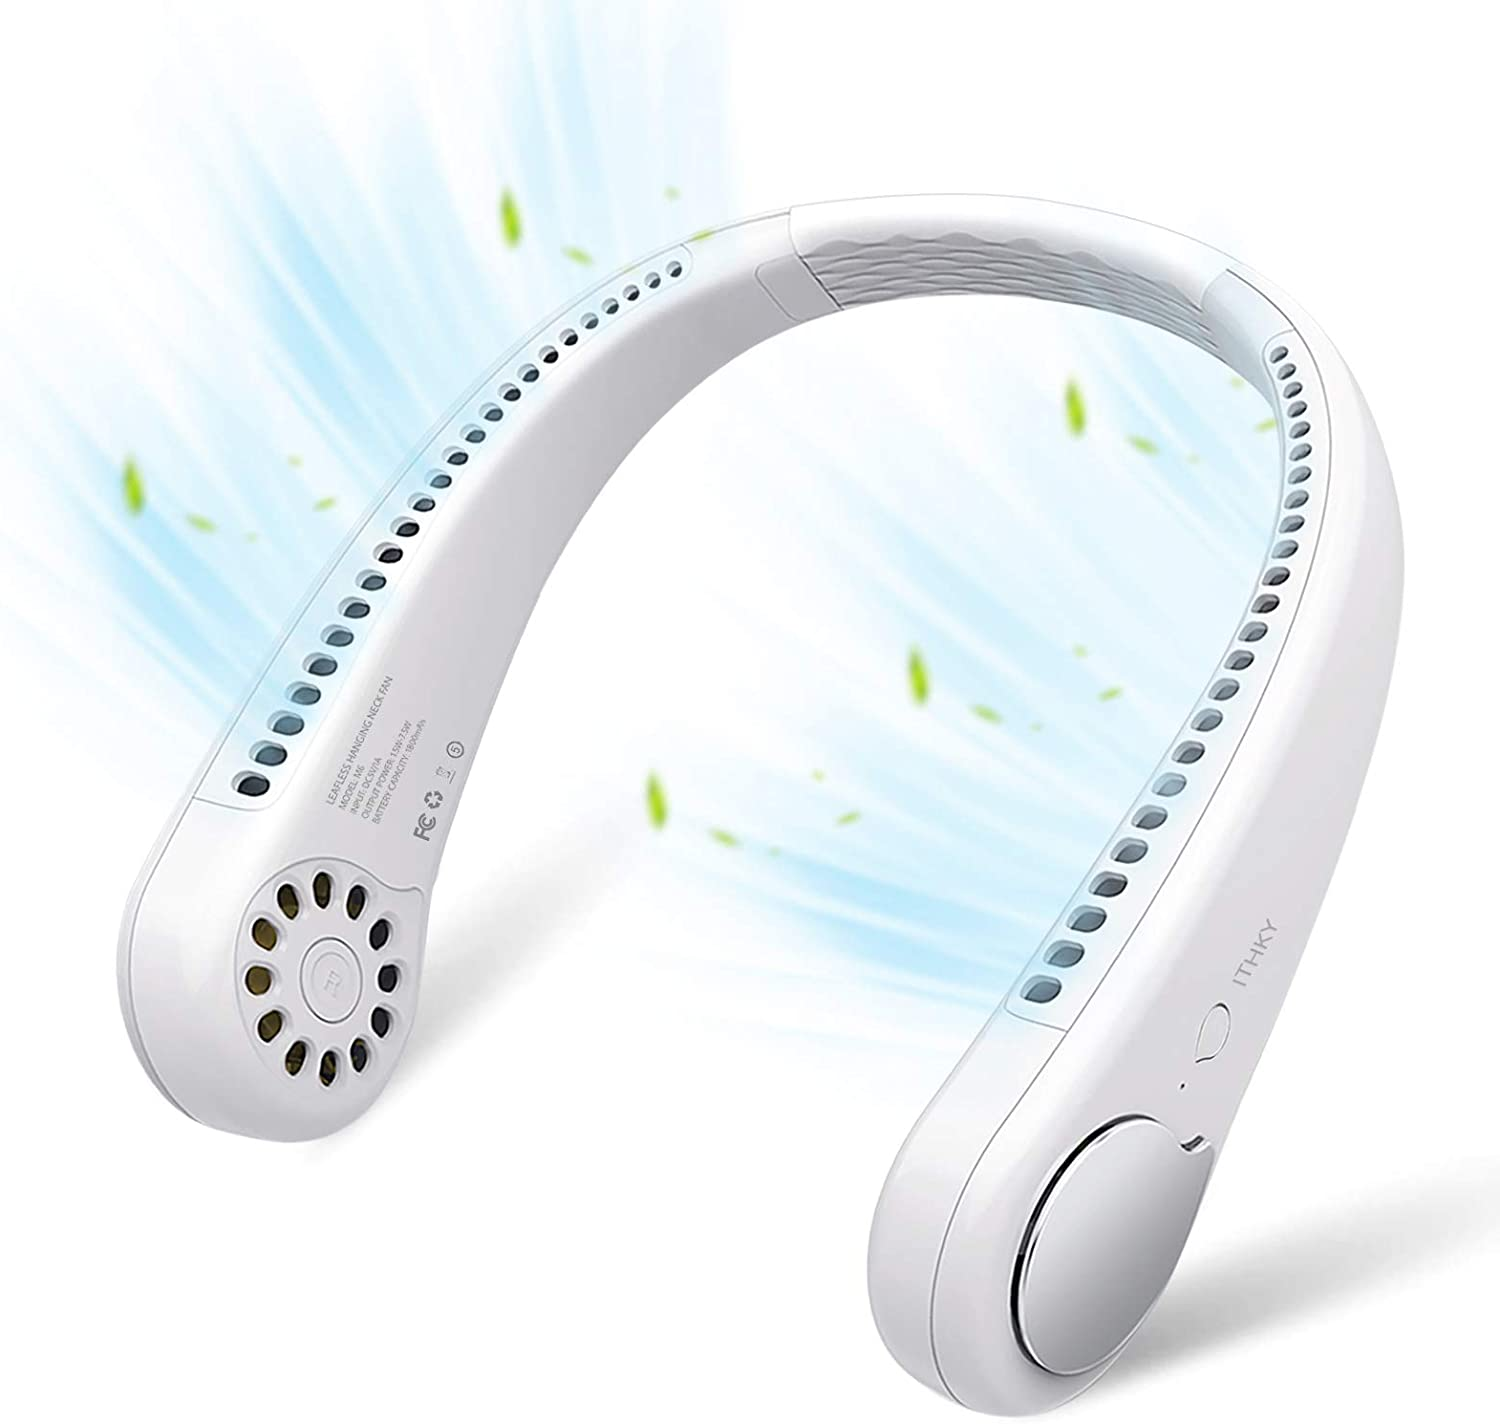 Portable Neck Fan - ITHKY Hands Free Bladeless Neck Fan, 360° Cooling Hanging Fan, USB Rechargeable Personal Neck Fan, Headphone Design Neck Air Conditioner with 3 Wind Speed for Outdoor Indoor